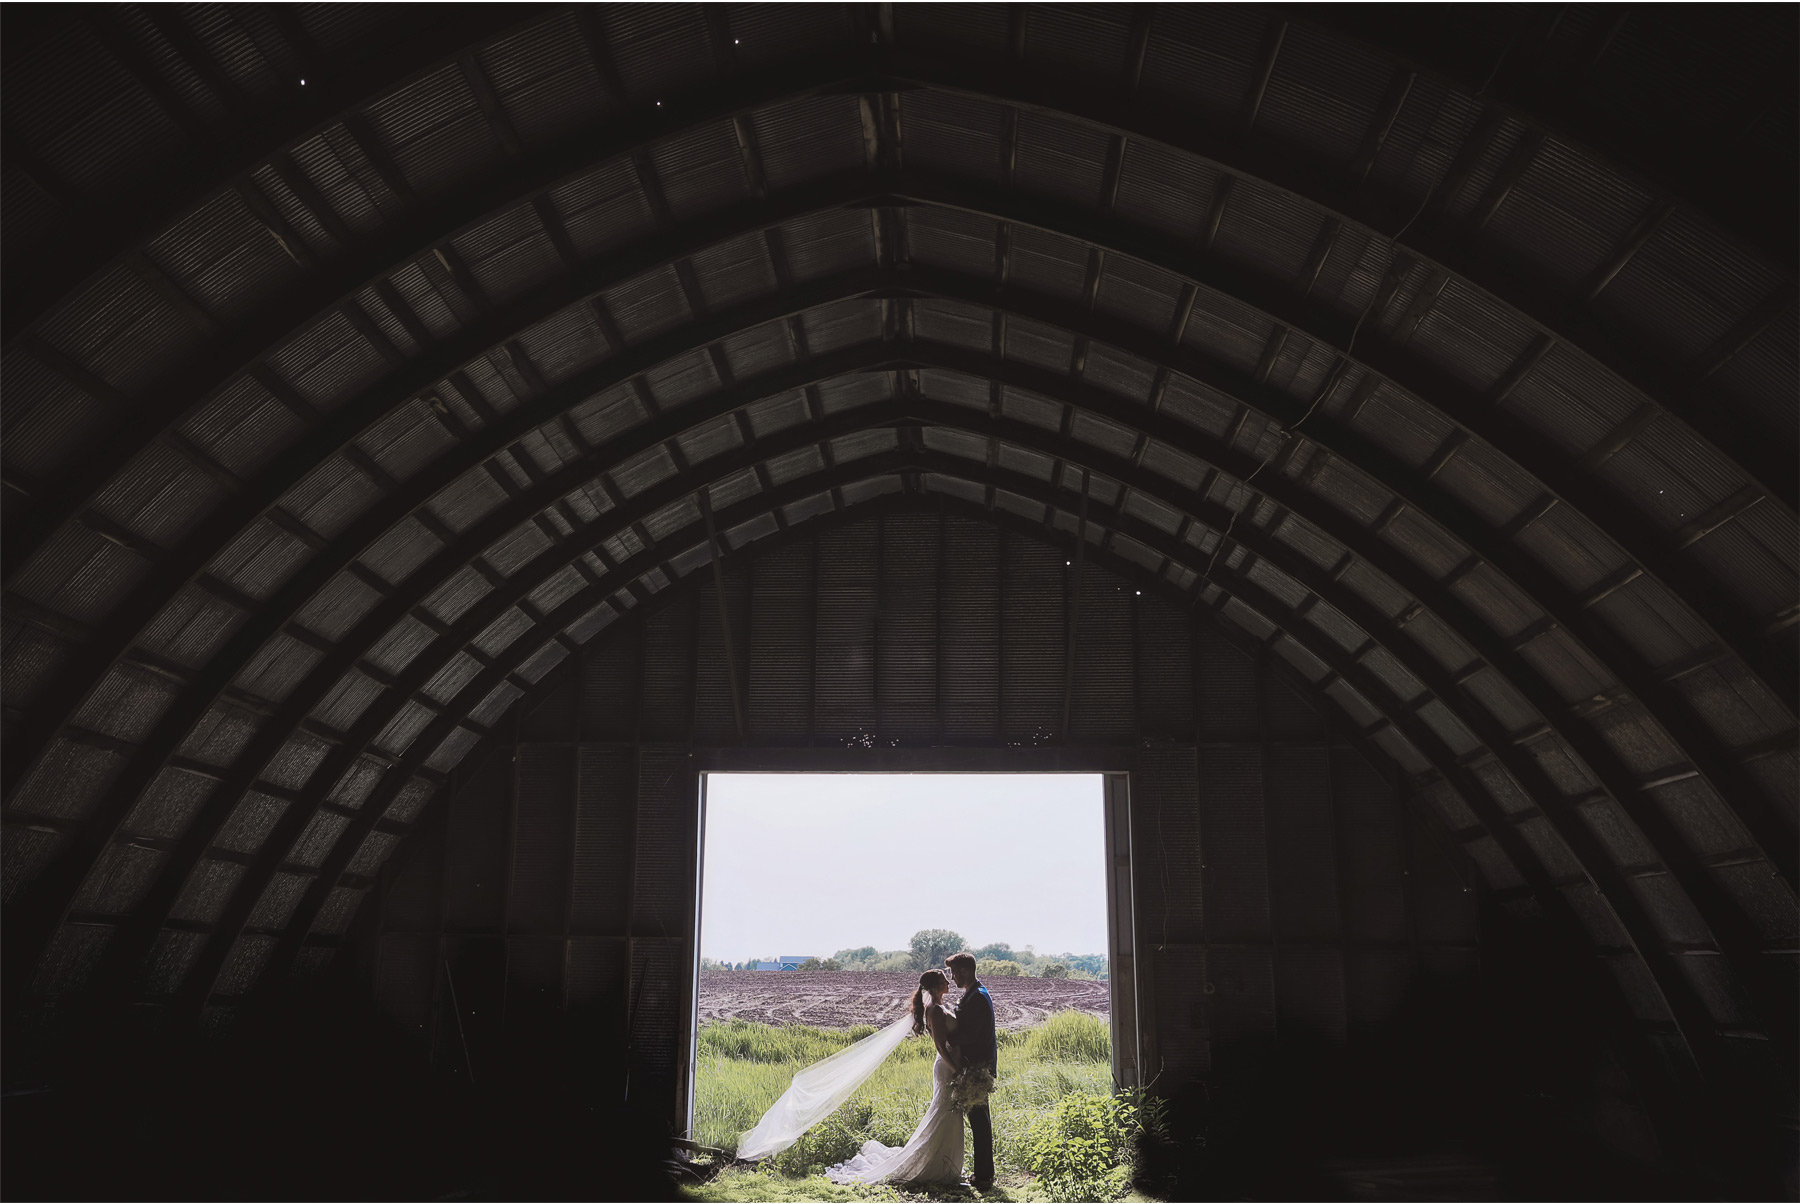 17-Minneapolis-Minnesota-Wedding-Andrew-Vick-Photography-Bavaria-Downs-Bride-Groom-Summer-Barn-Paige-and-Blake.jpg